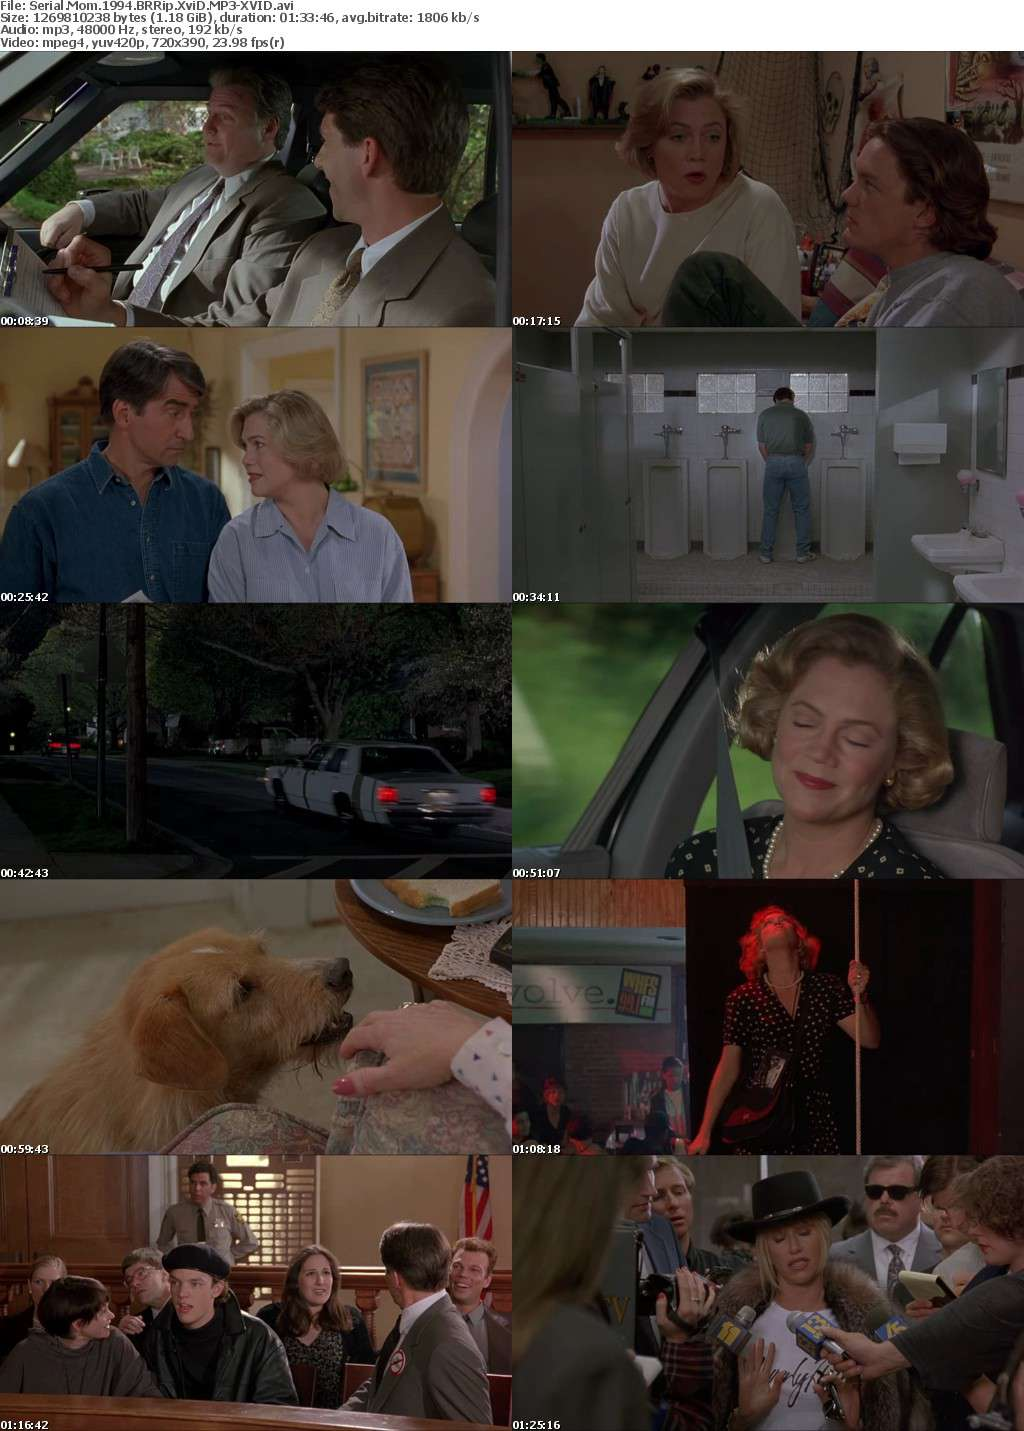 Serial Mom 1994 BRRip XviD MP3-XVID